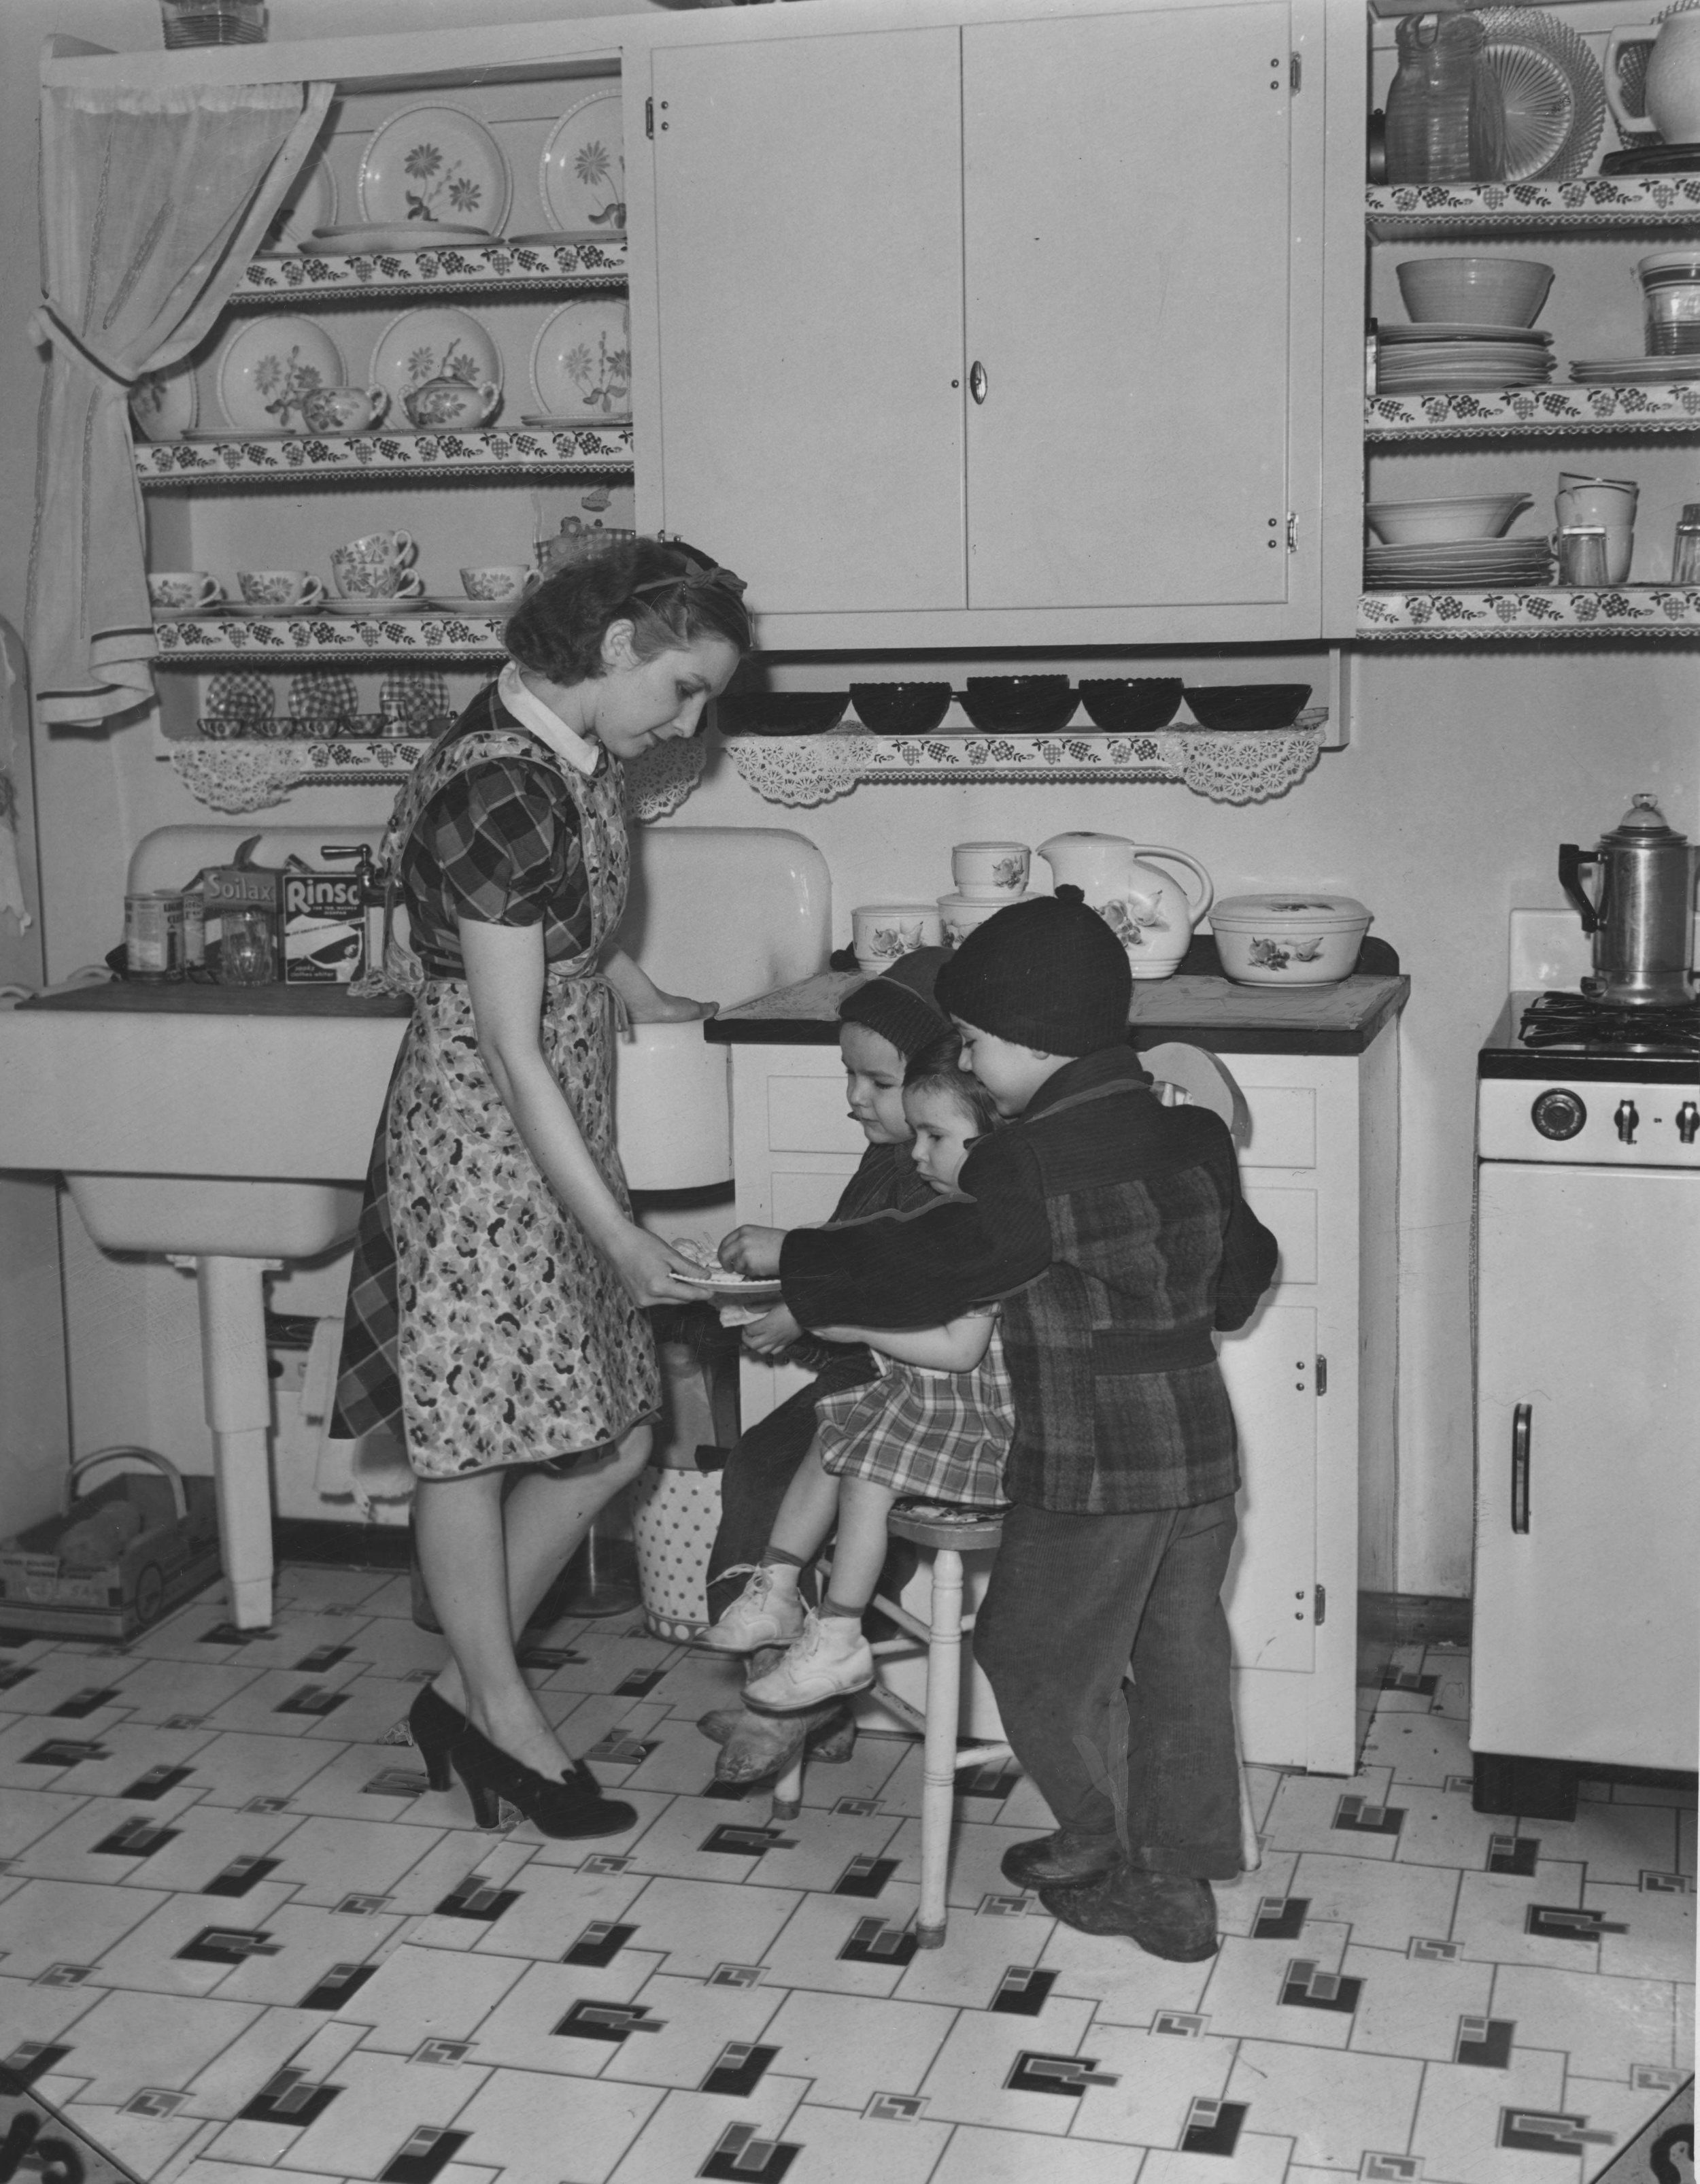 Woodhill_Homes_1941_Model_kitchen.jpg